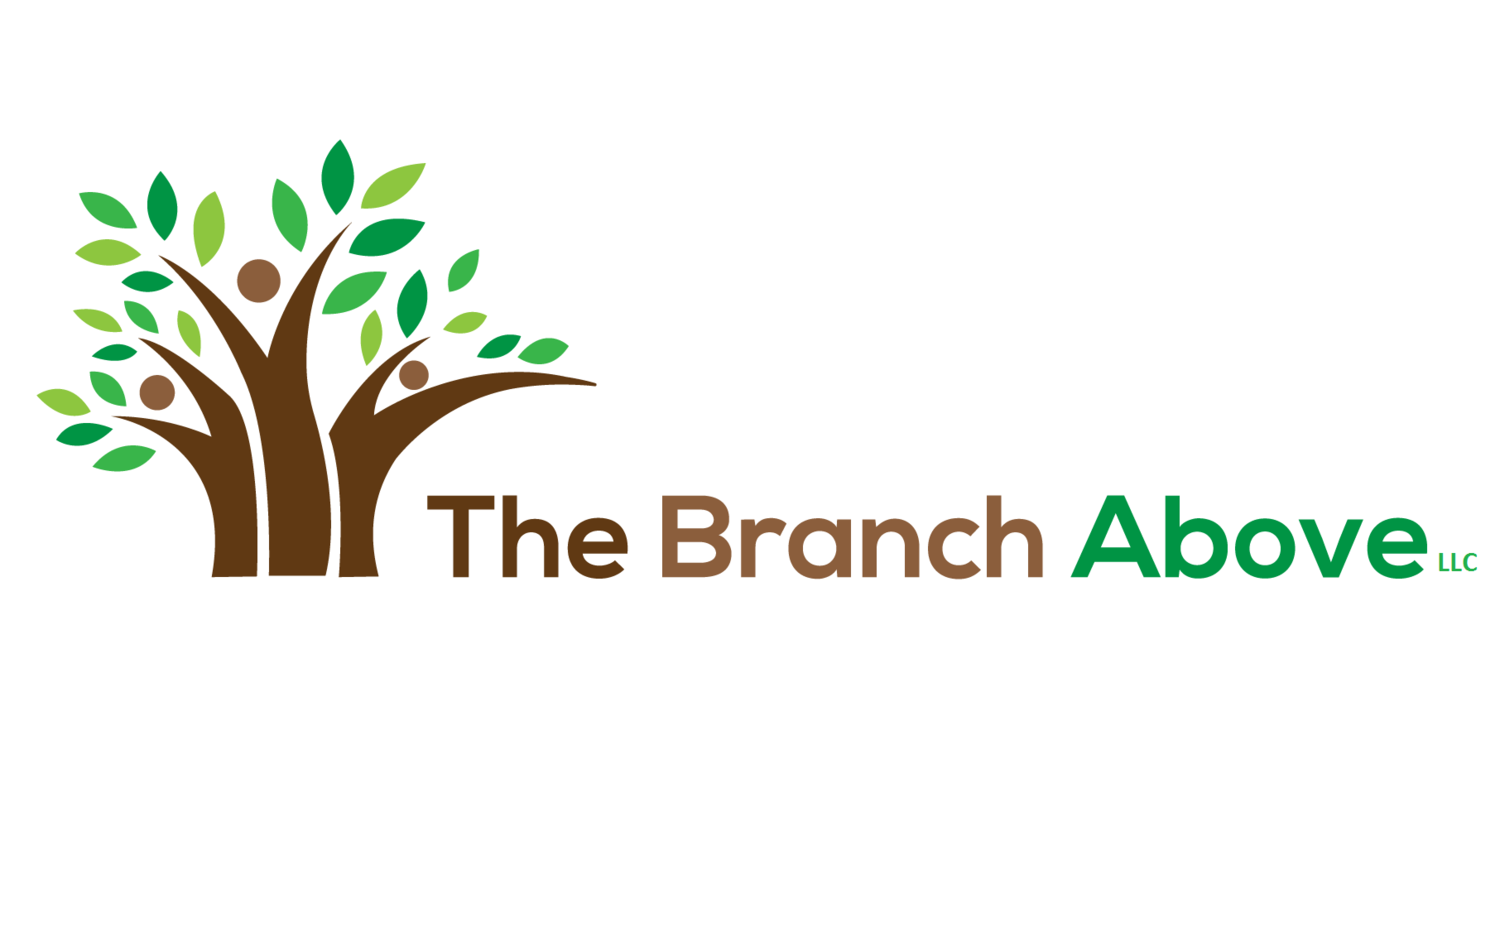 The Branch Above